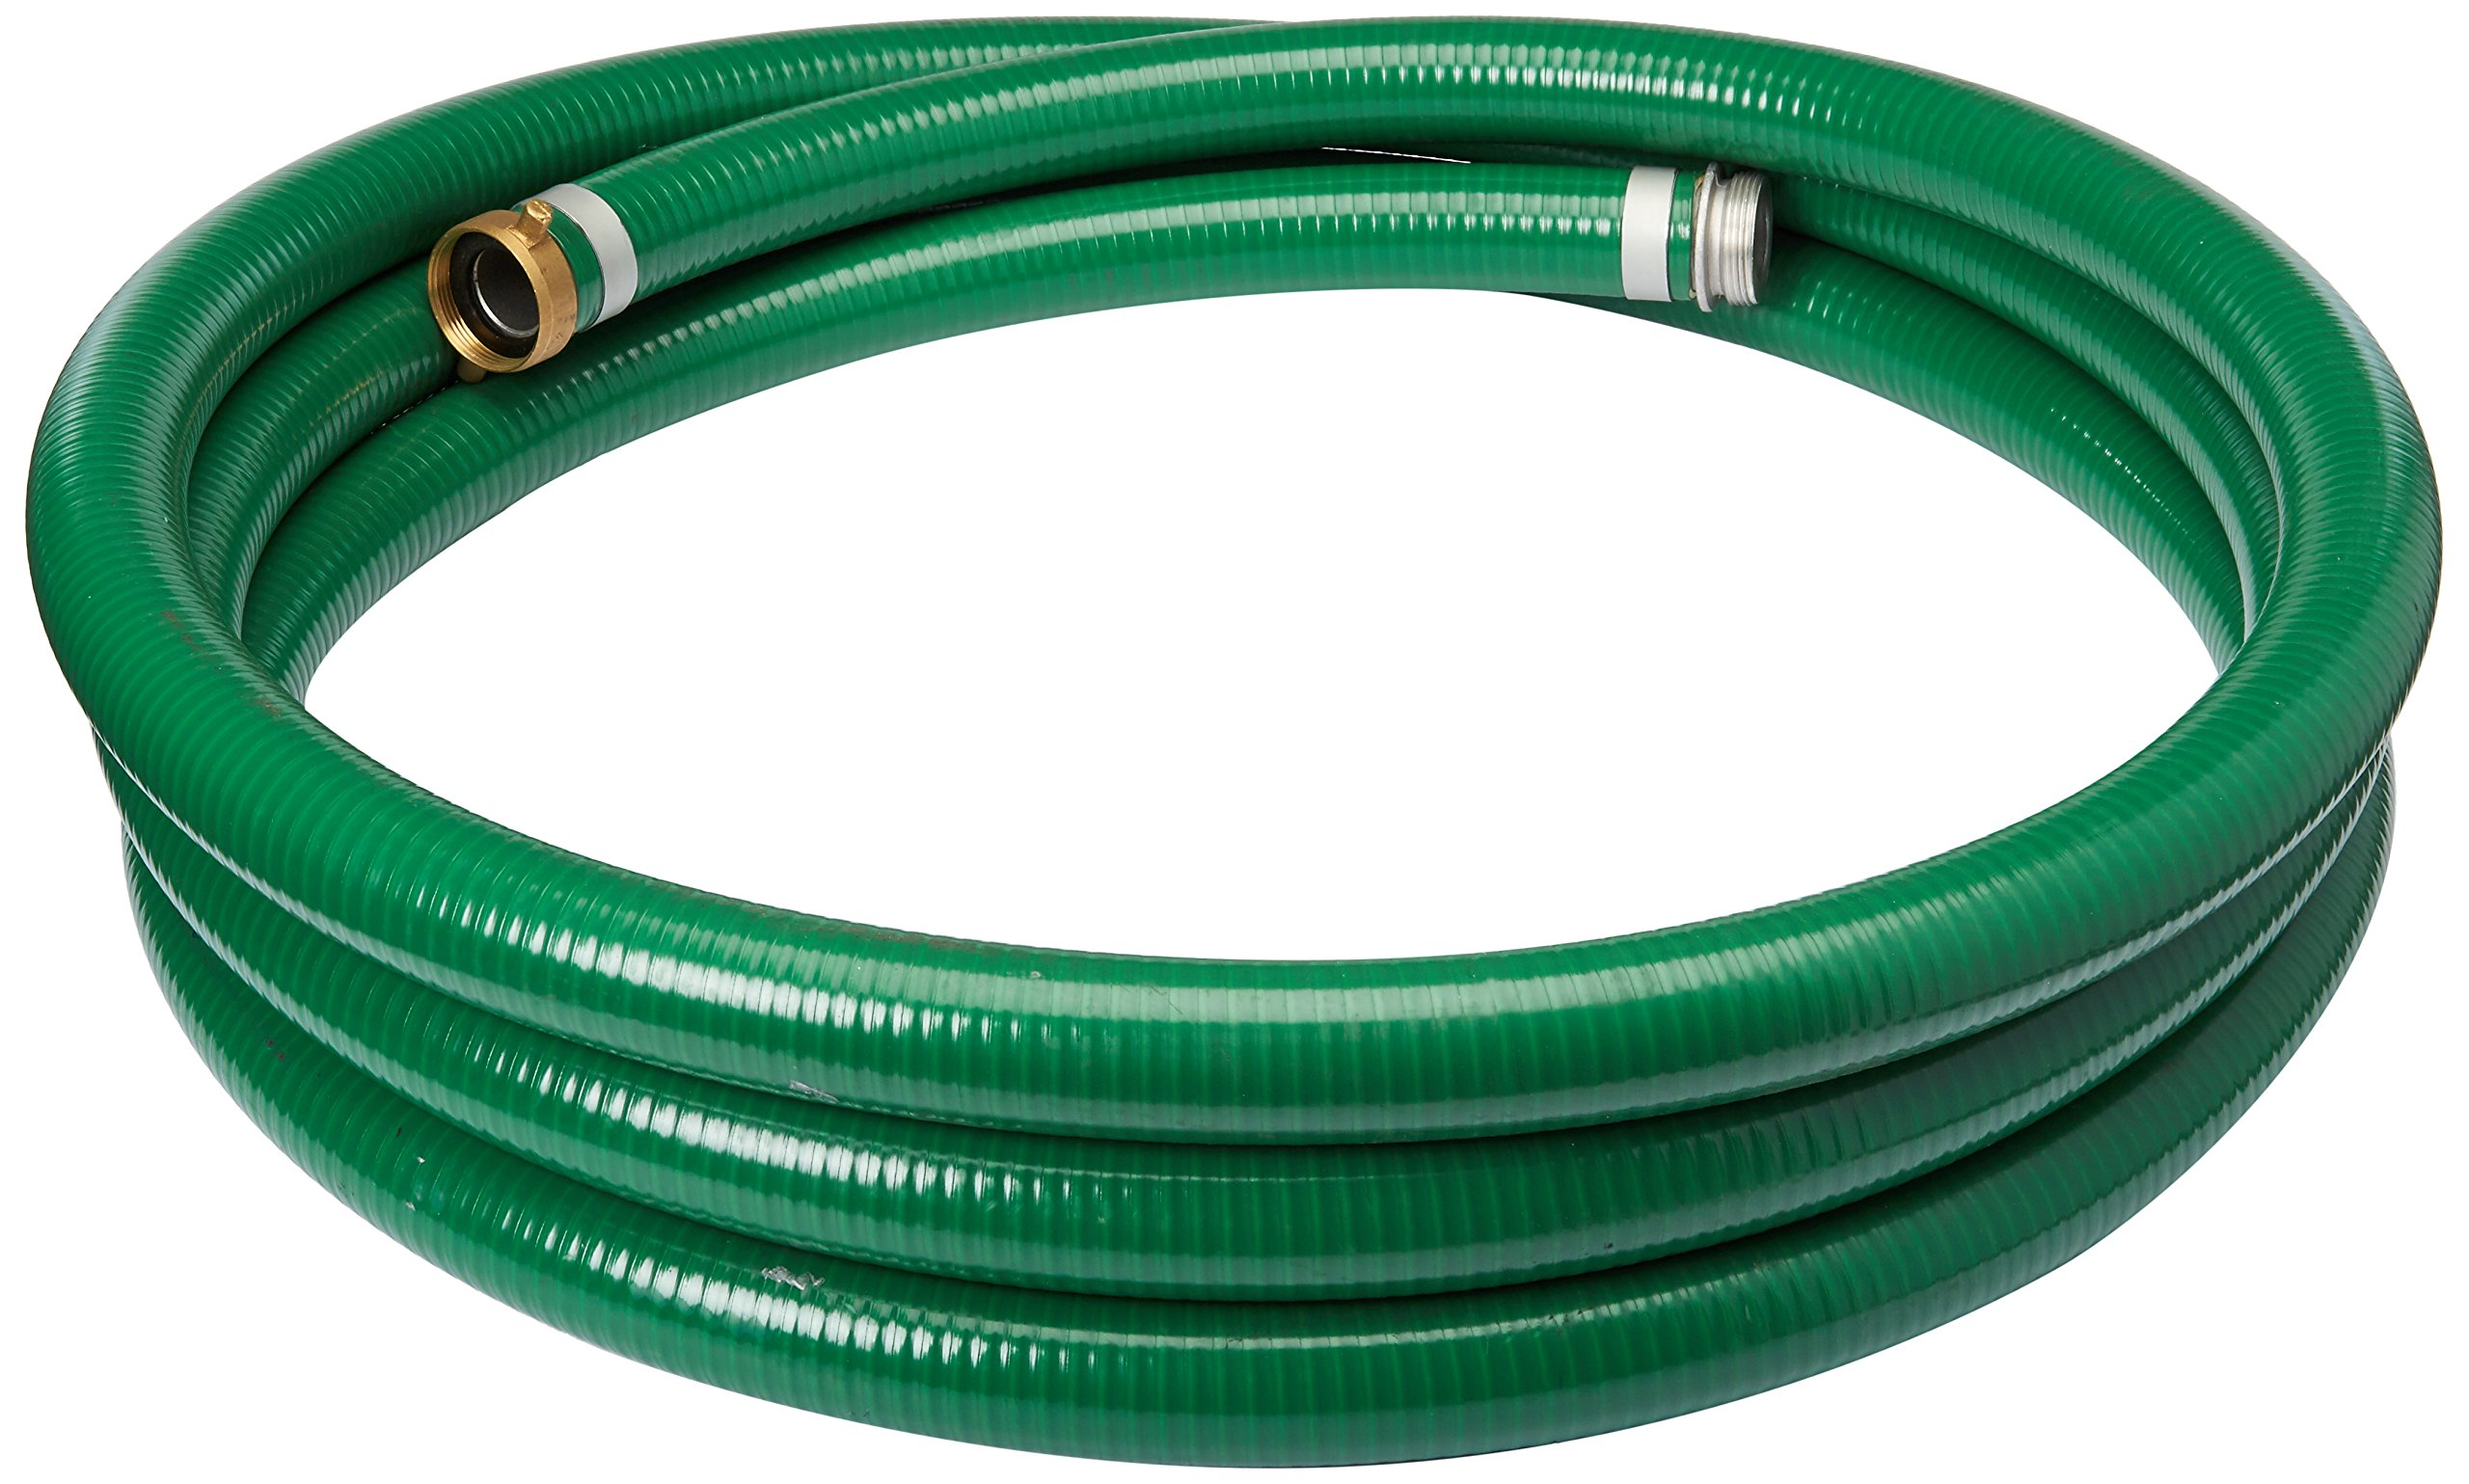 Apache 98128010 1-1/2'' x 20' PVC Style G (Green) Suction Hose with Aluminum Pin Lug Fittings